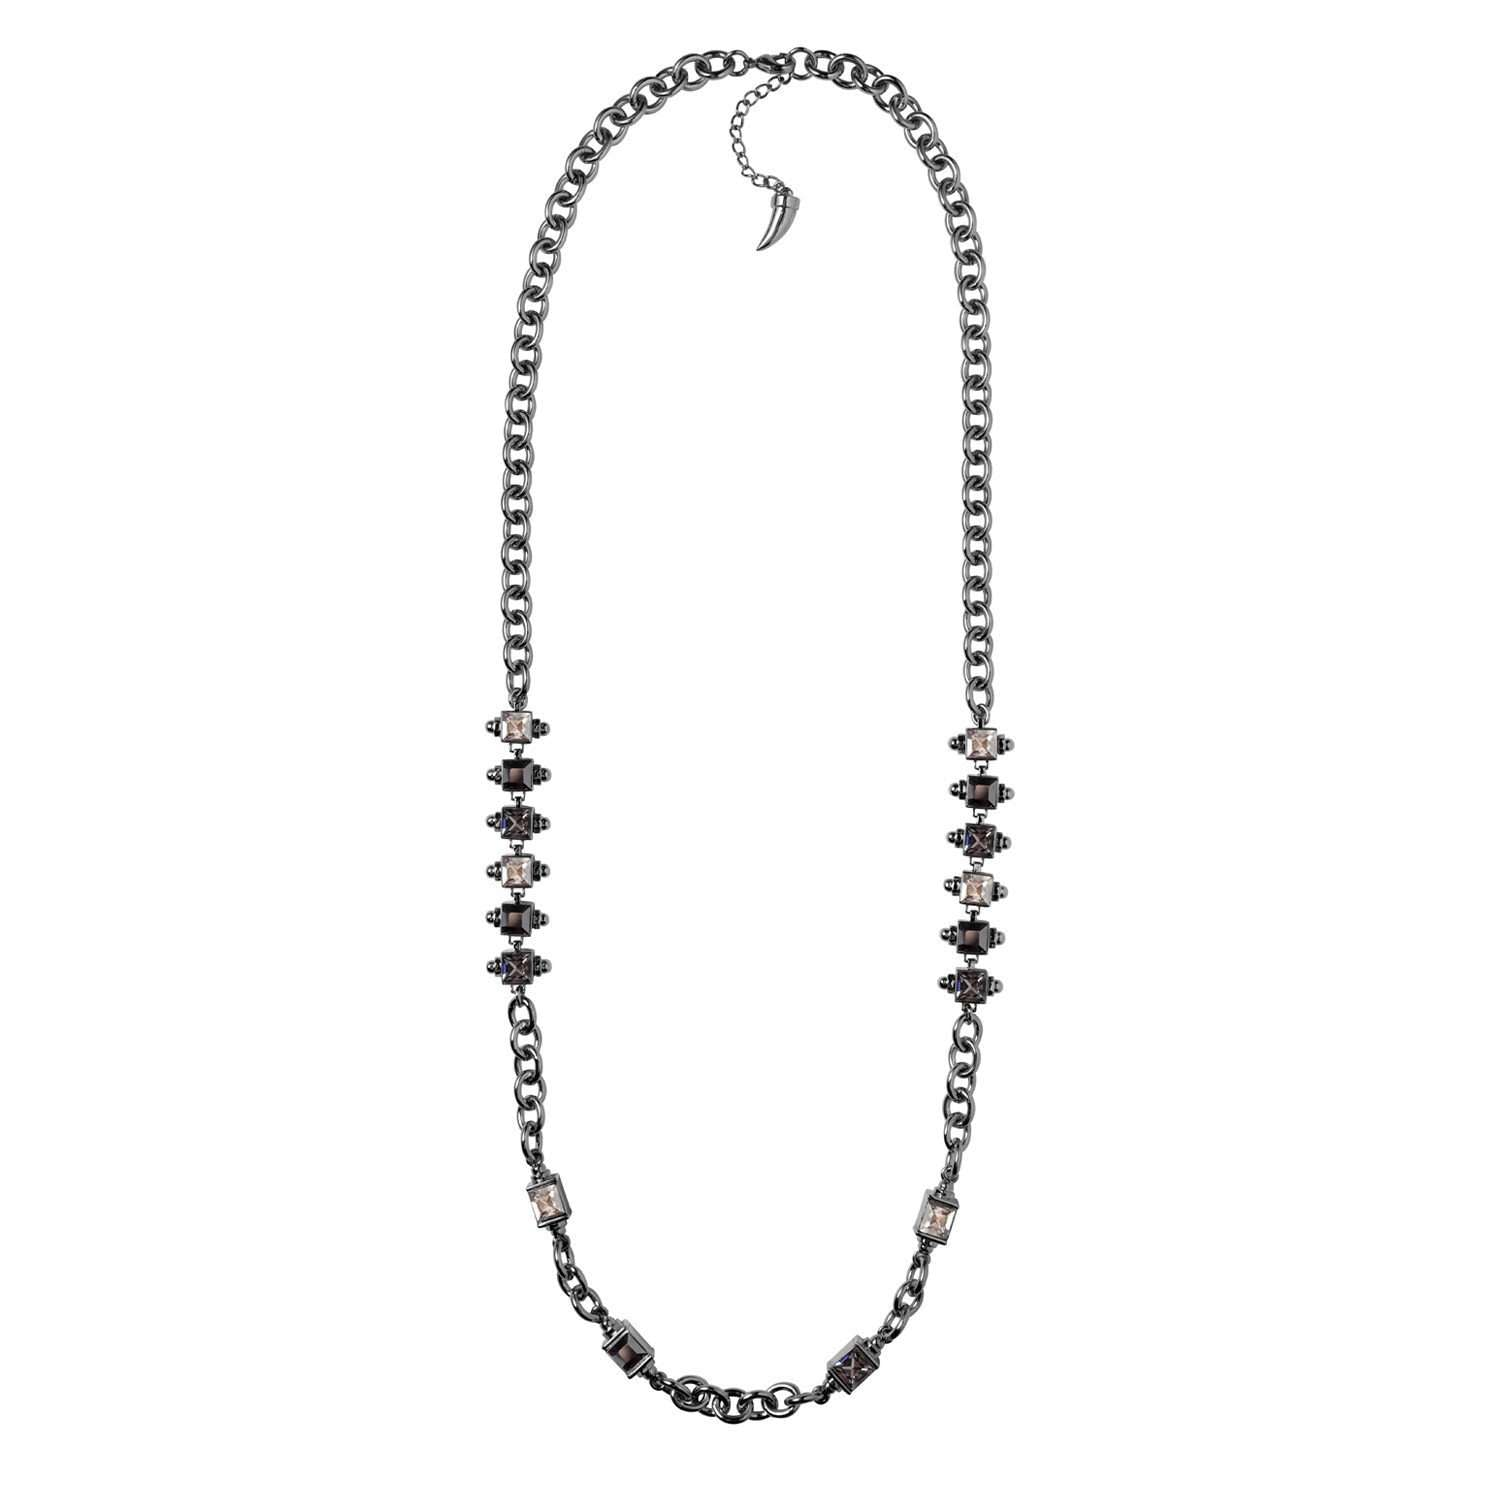 Hematite plated chain necklace with rhodium details and silver crystals